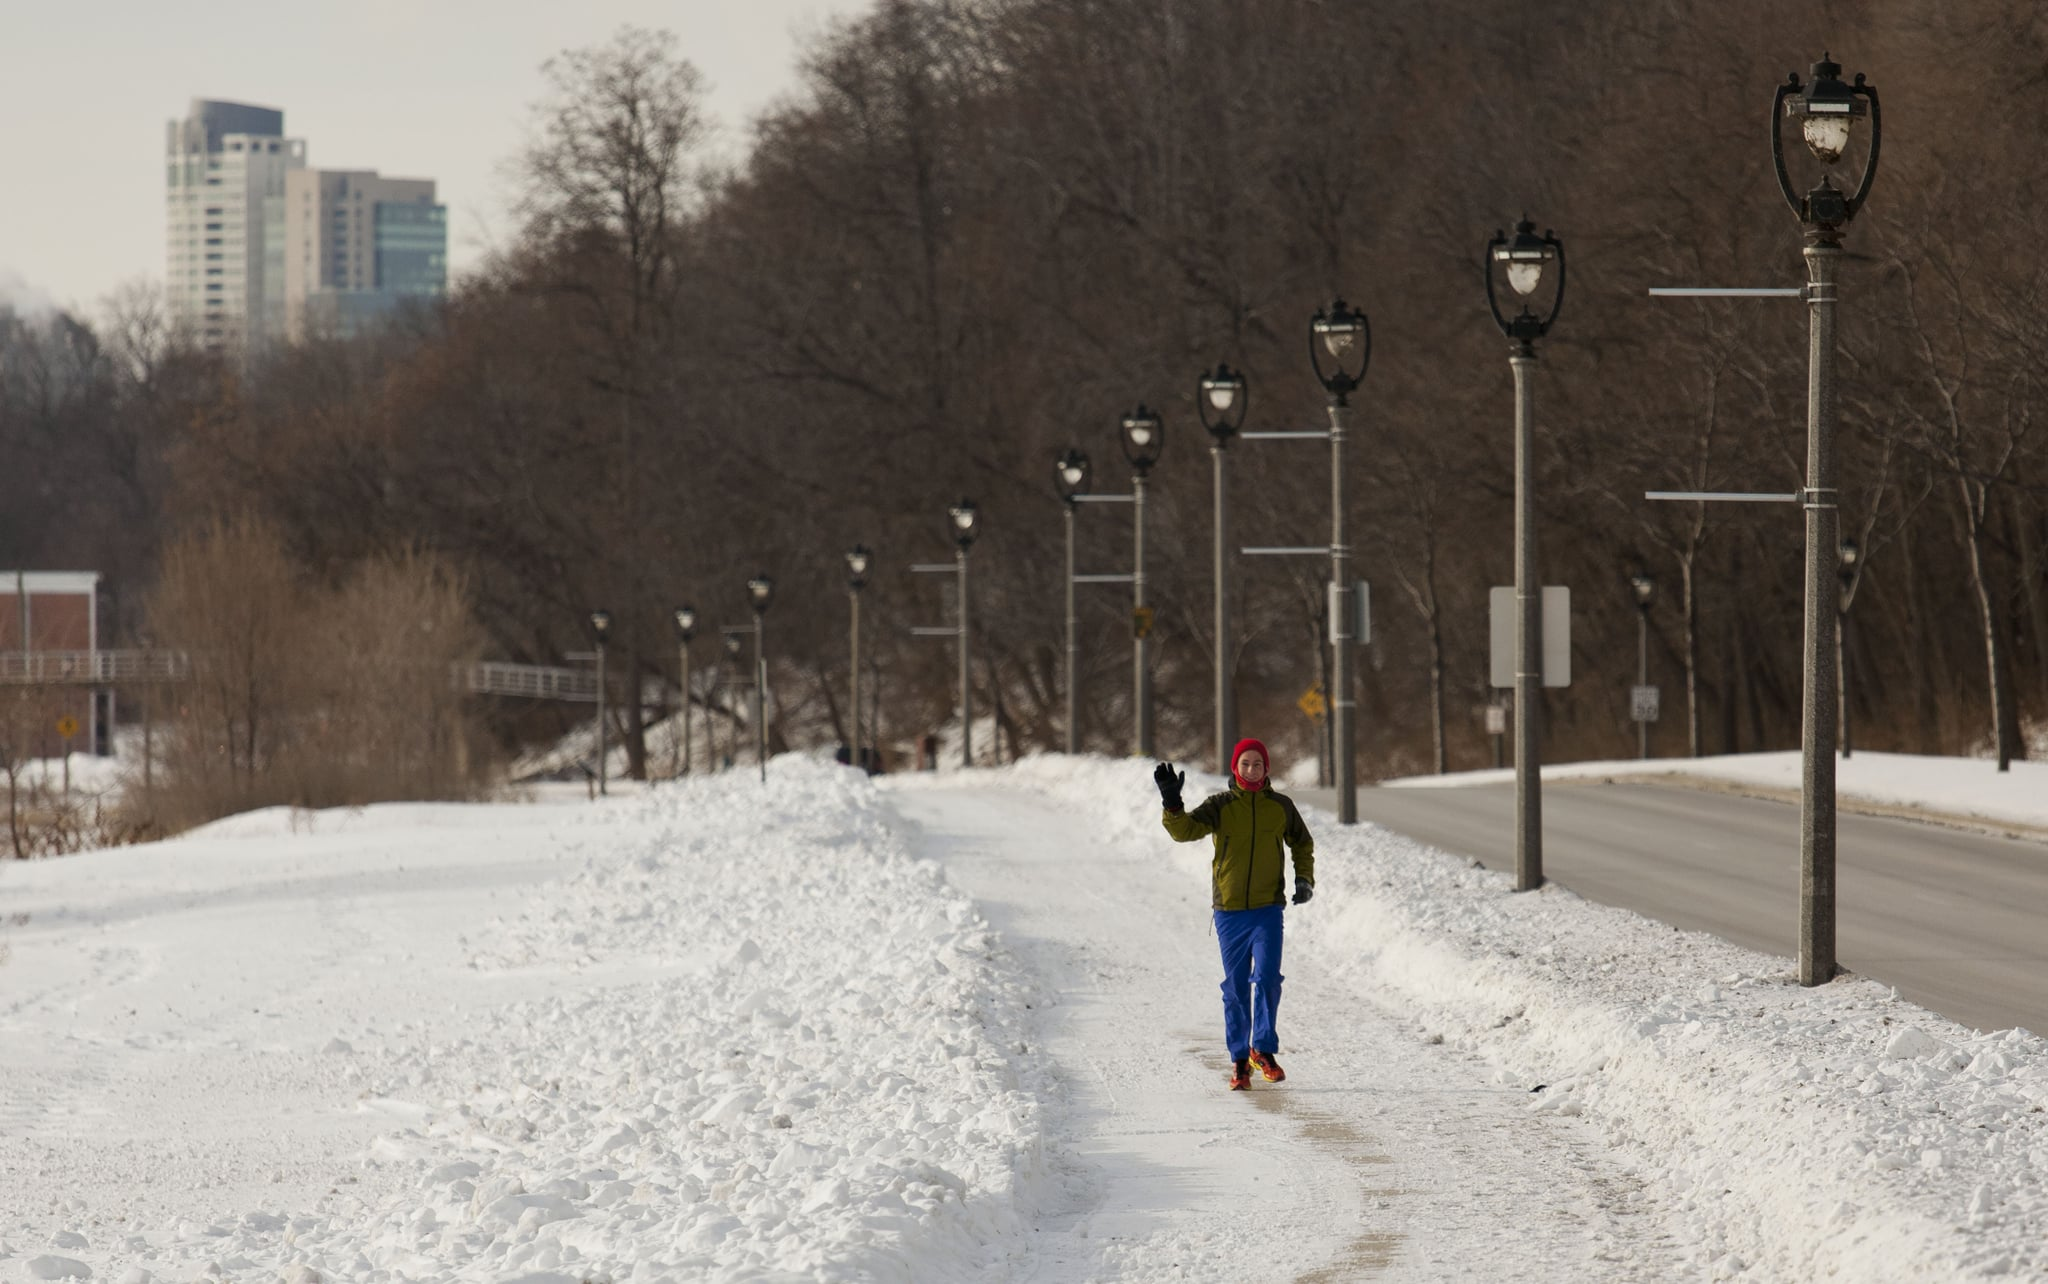 A dedicated runner braved the chilly weather for a jog through Milwaukee.